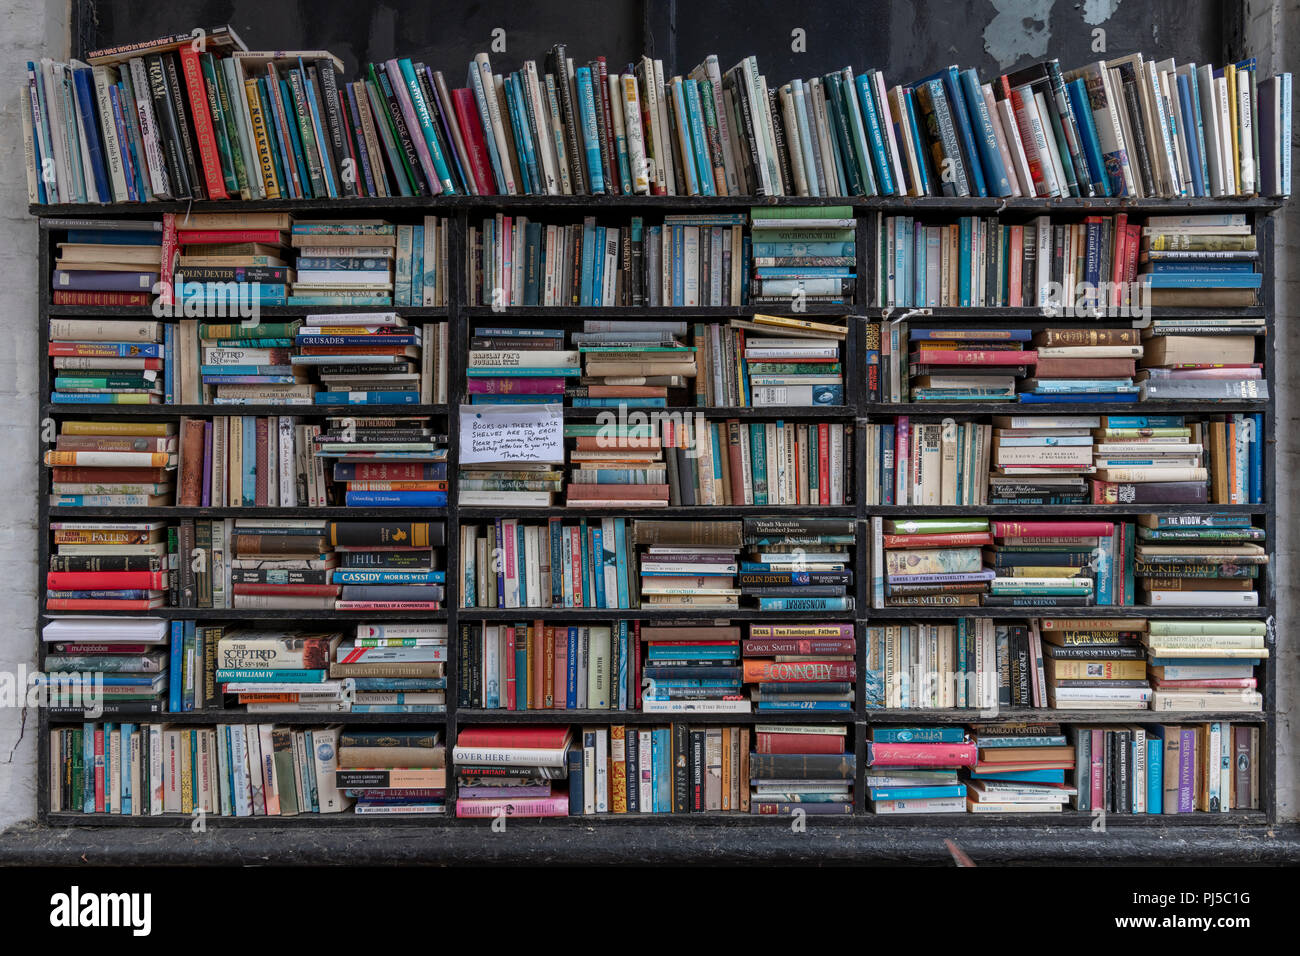 Honesty bookshelves outside a bookshop in Eastbourne. Anyone buying a book has to post the cash through the letterbox when the shop is closed. - Stock Image